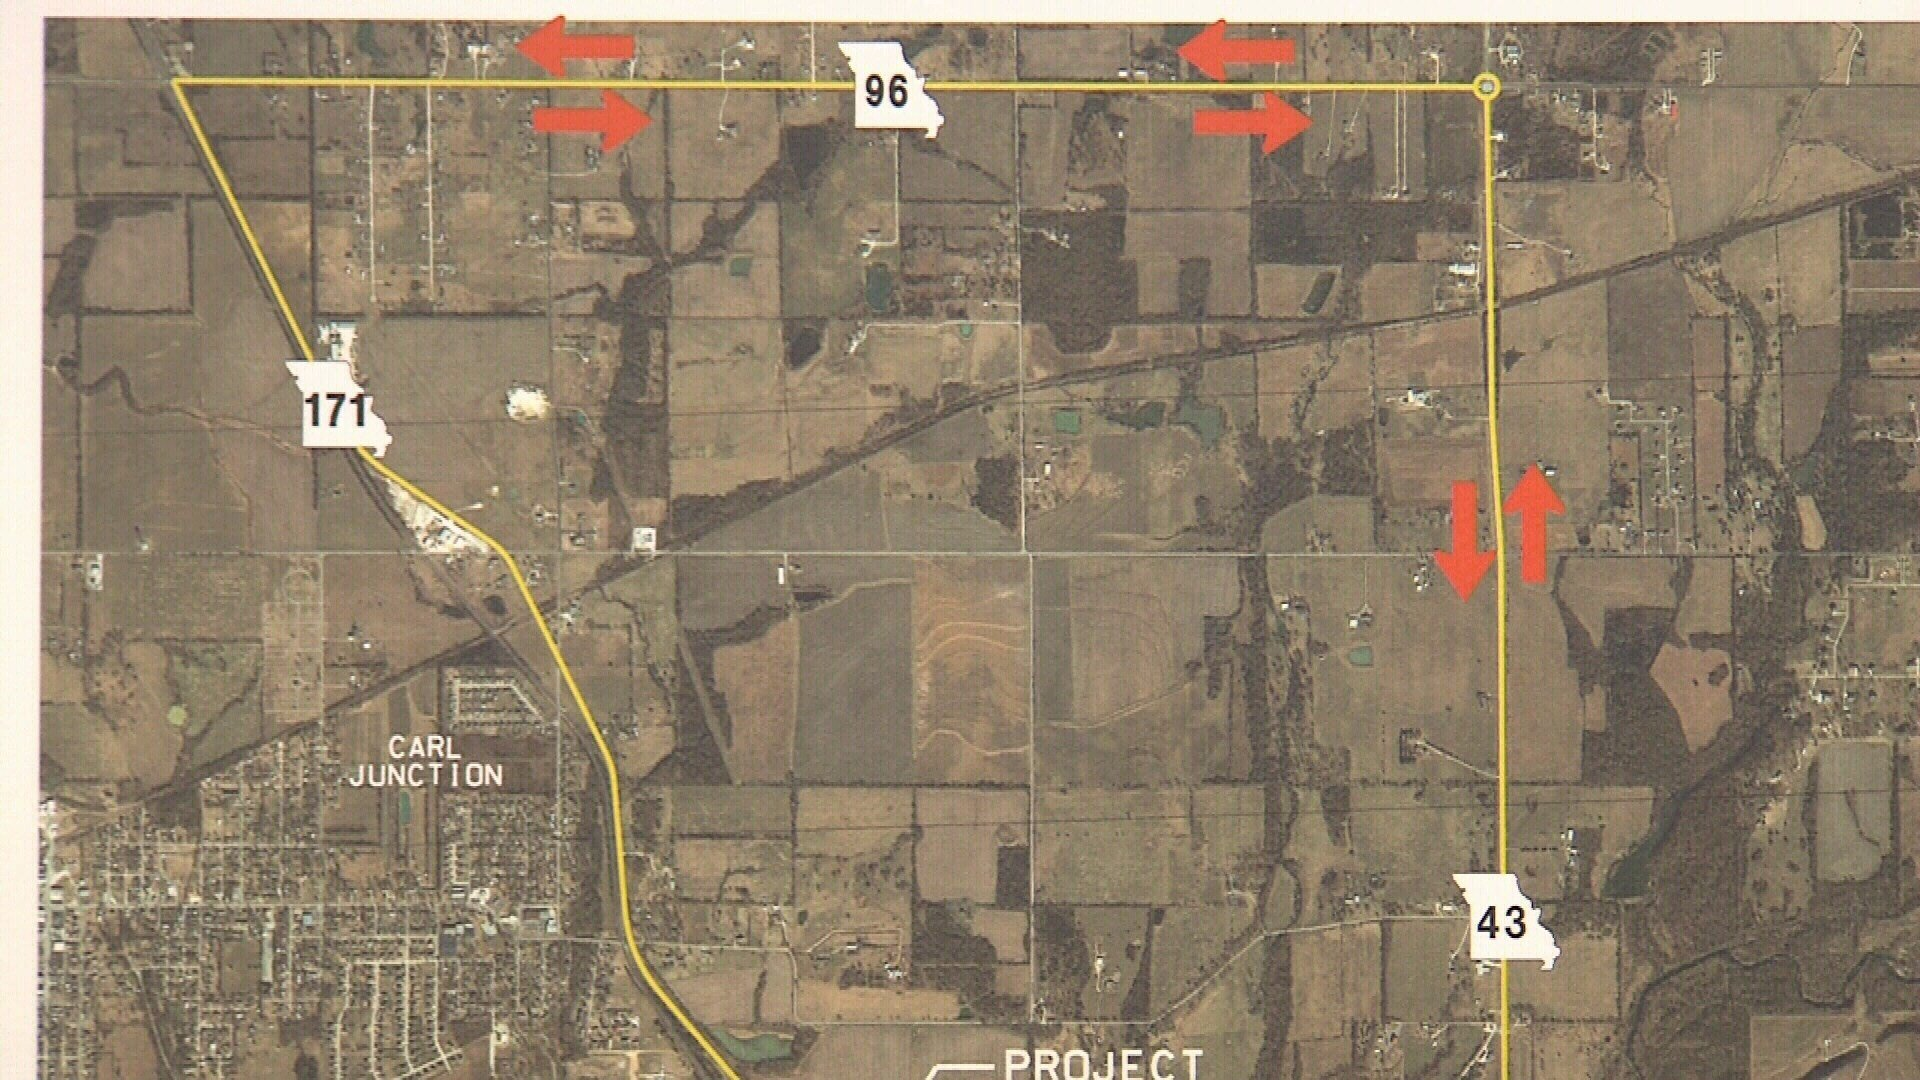 Complete detour route; northbound on Highway 43, westbound on Highway 96.  Center Creek bridge, not pictured on this map, is south on Highway 171 past Carl Junction